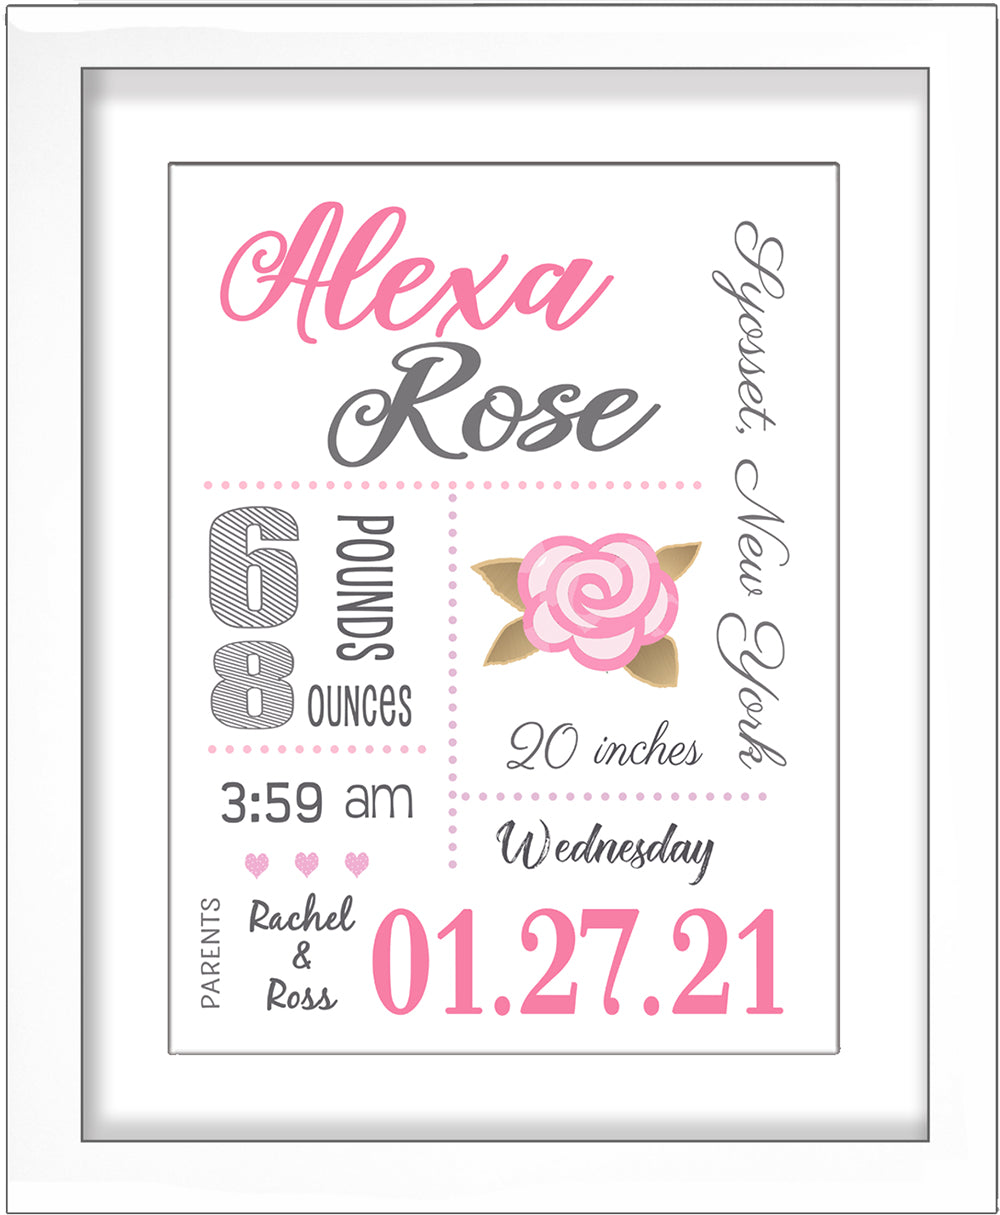 Baby Birth Stats Wall Art - Pink Rose with Gold Leaves